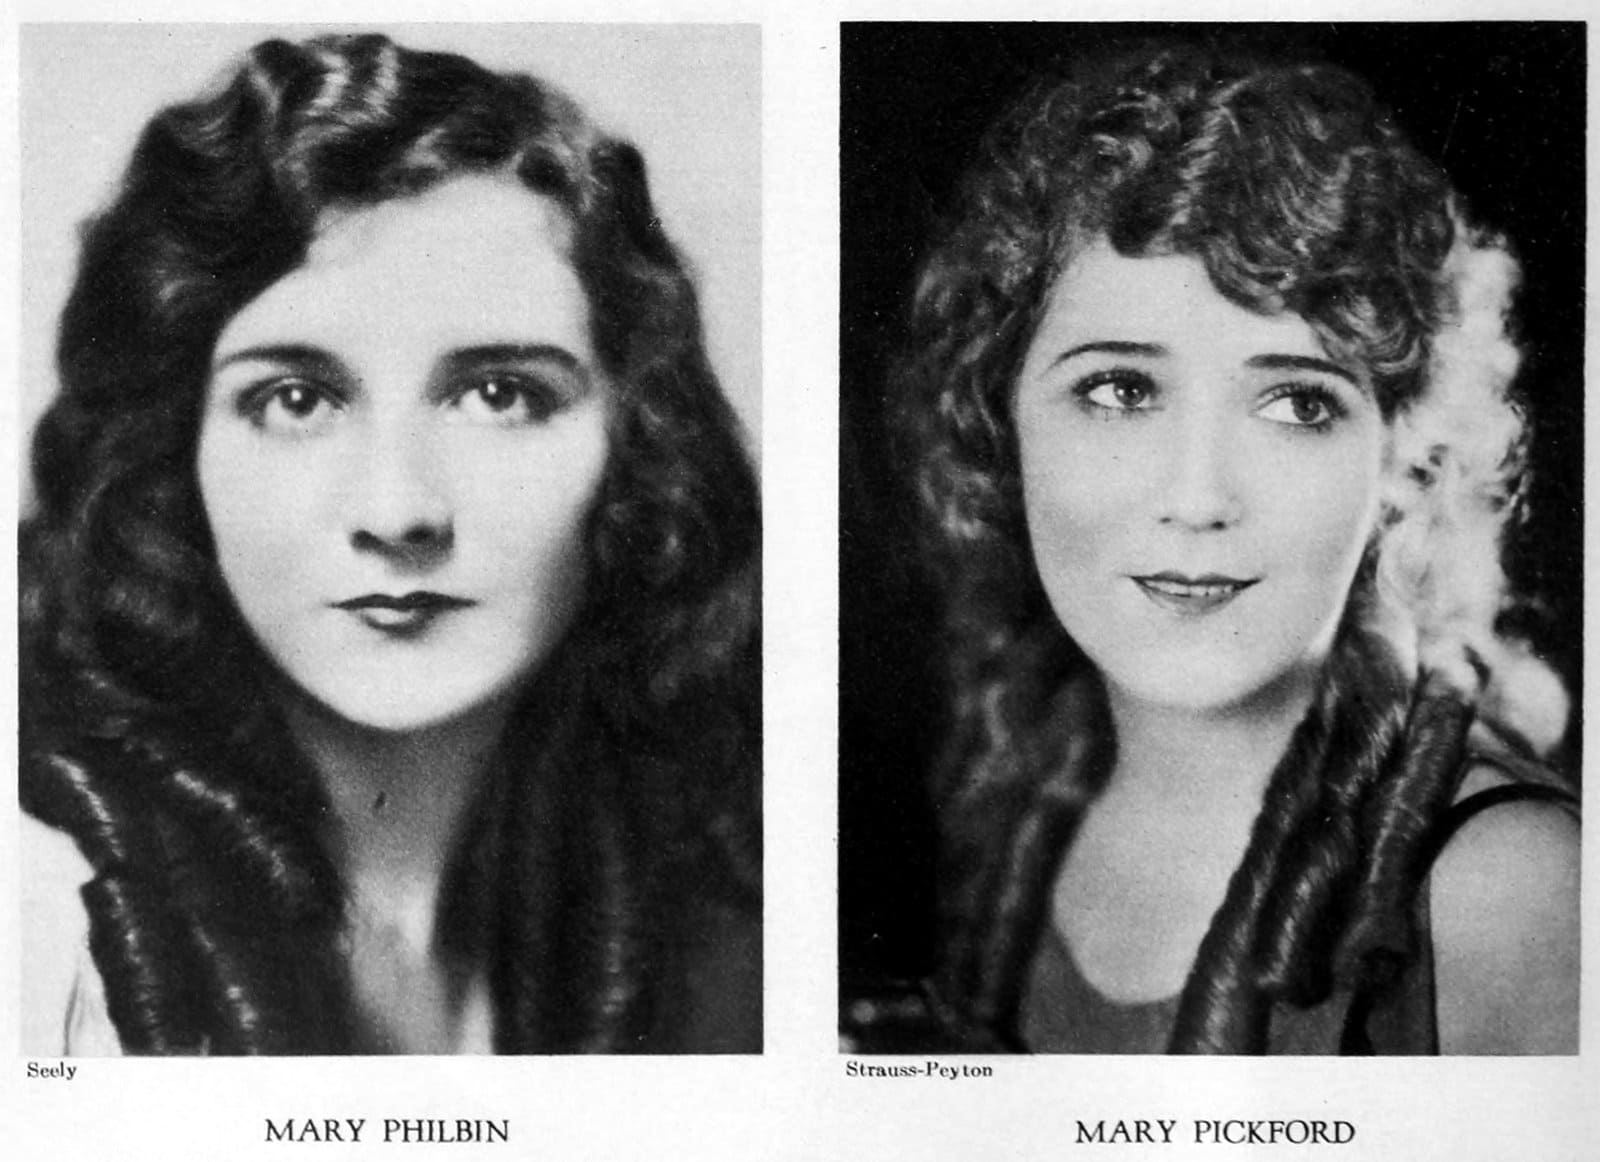 Long vintage 1920s hairstyles - Mary Philbin and Mary Pickford